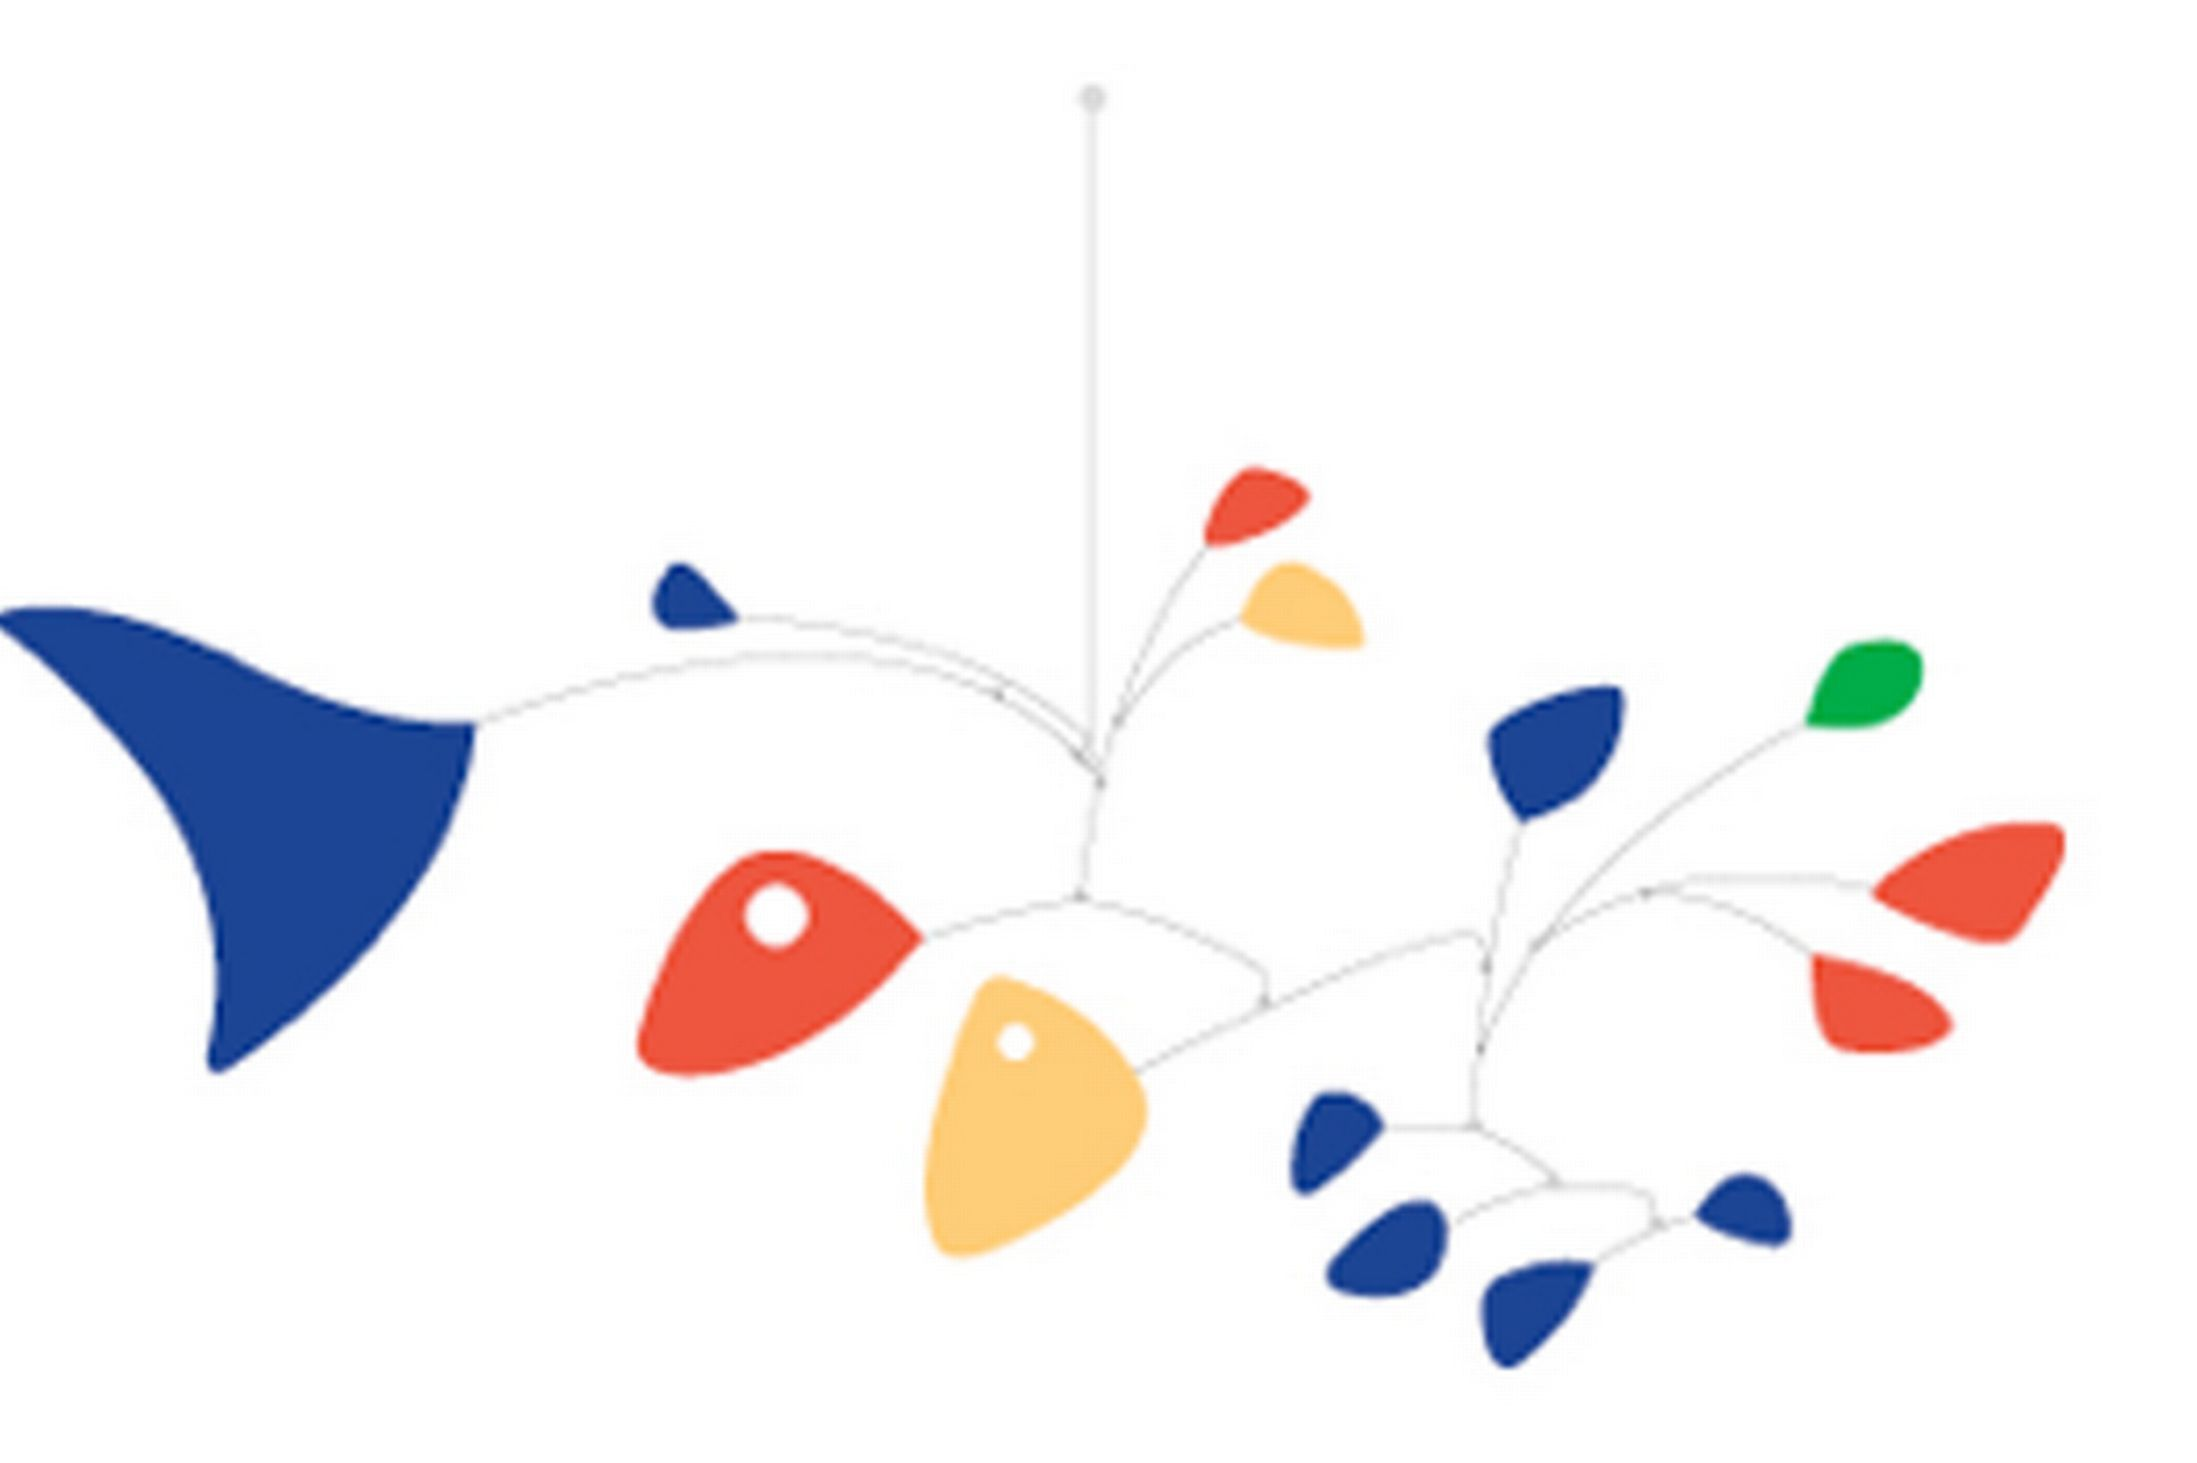 Alexander Calder 10 Things You Need To Know About The